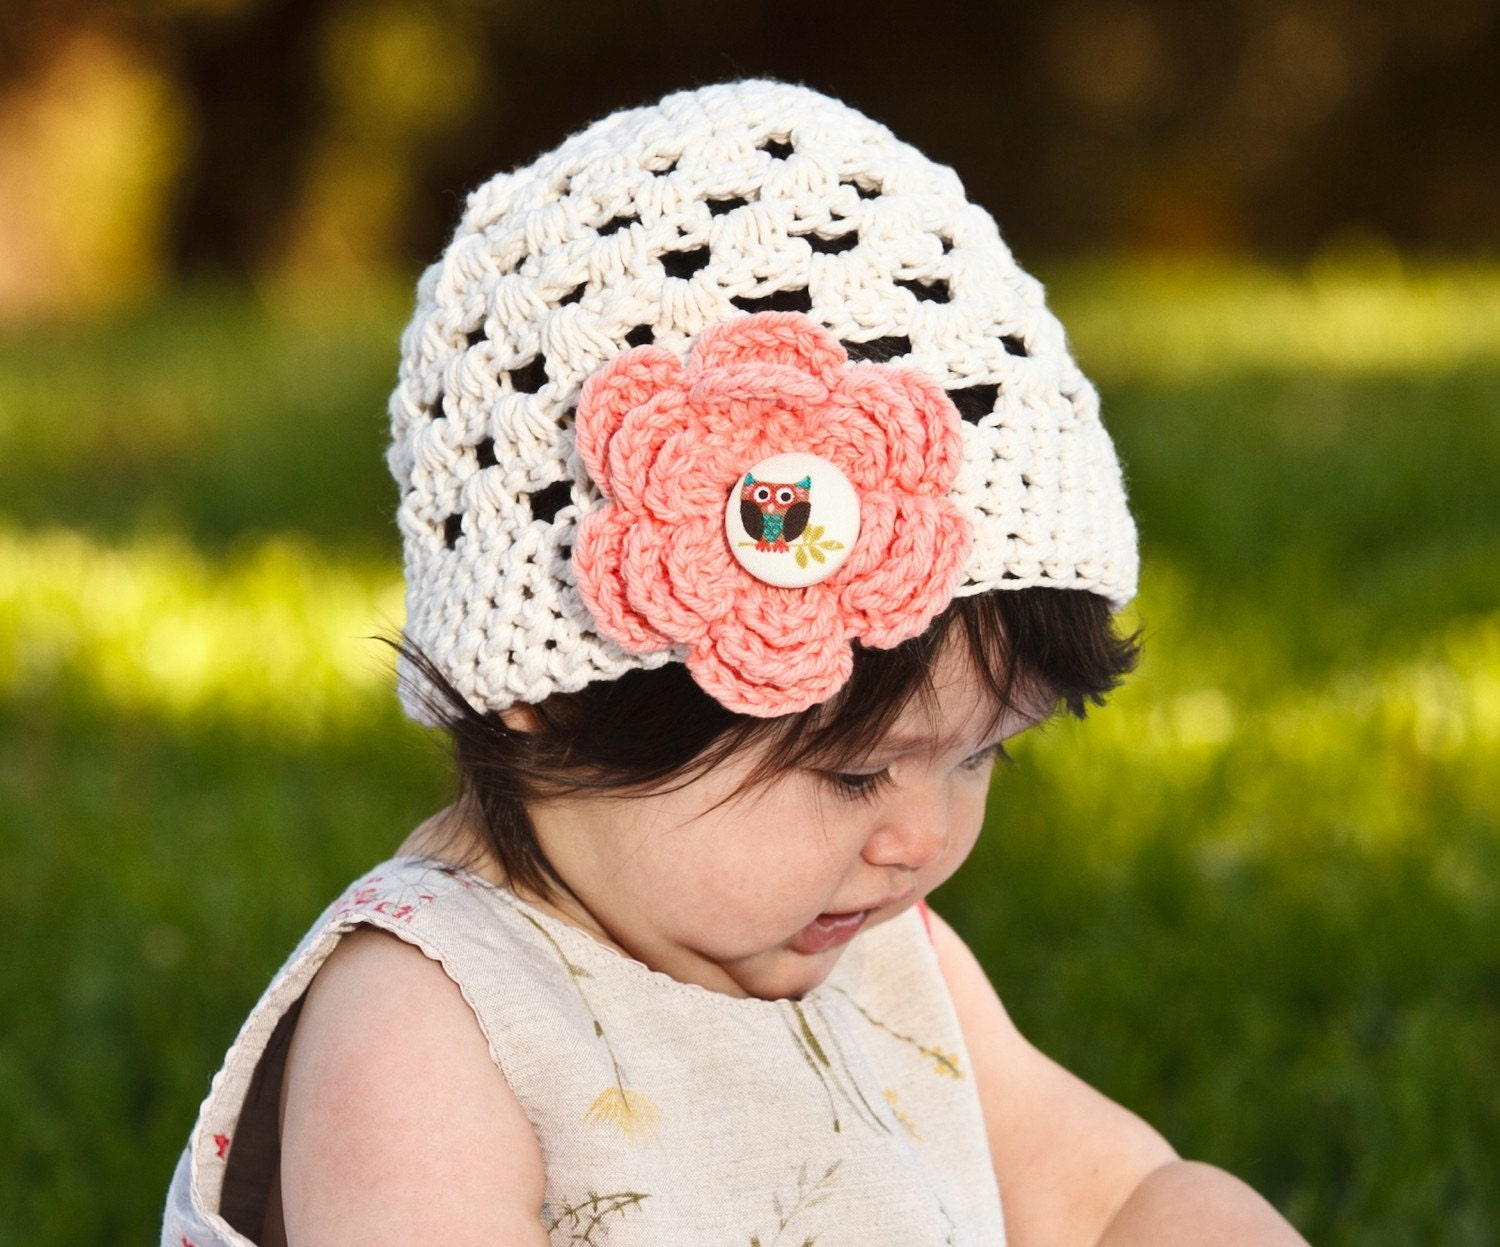 OWL HAT - Ecru Hat Beanie with Tea Rose Flower and Owl Button - Available in all sizes